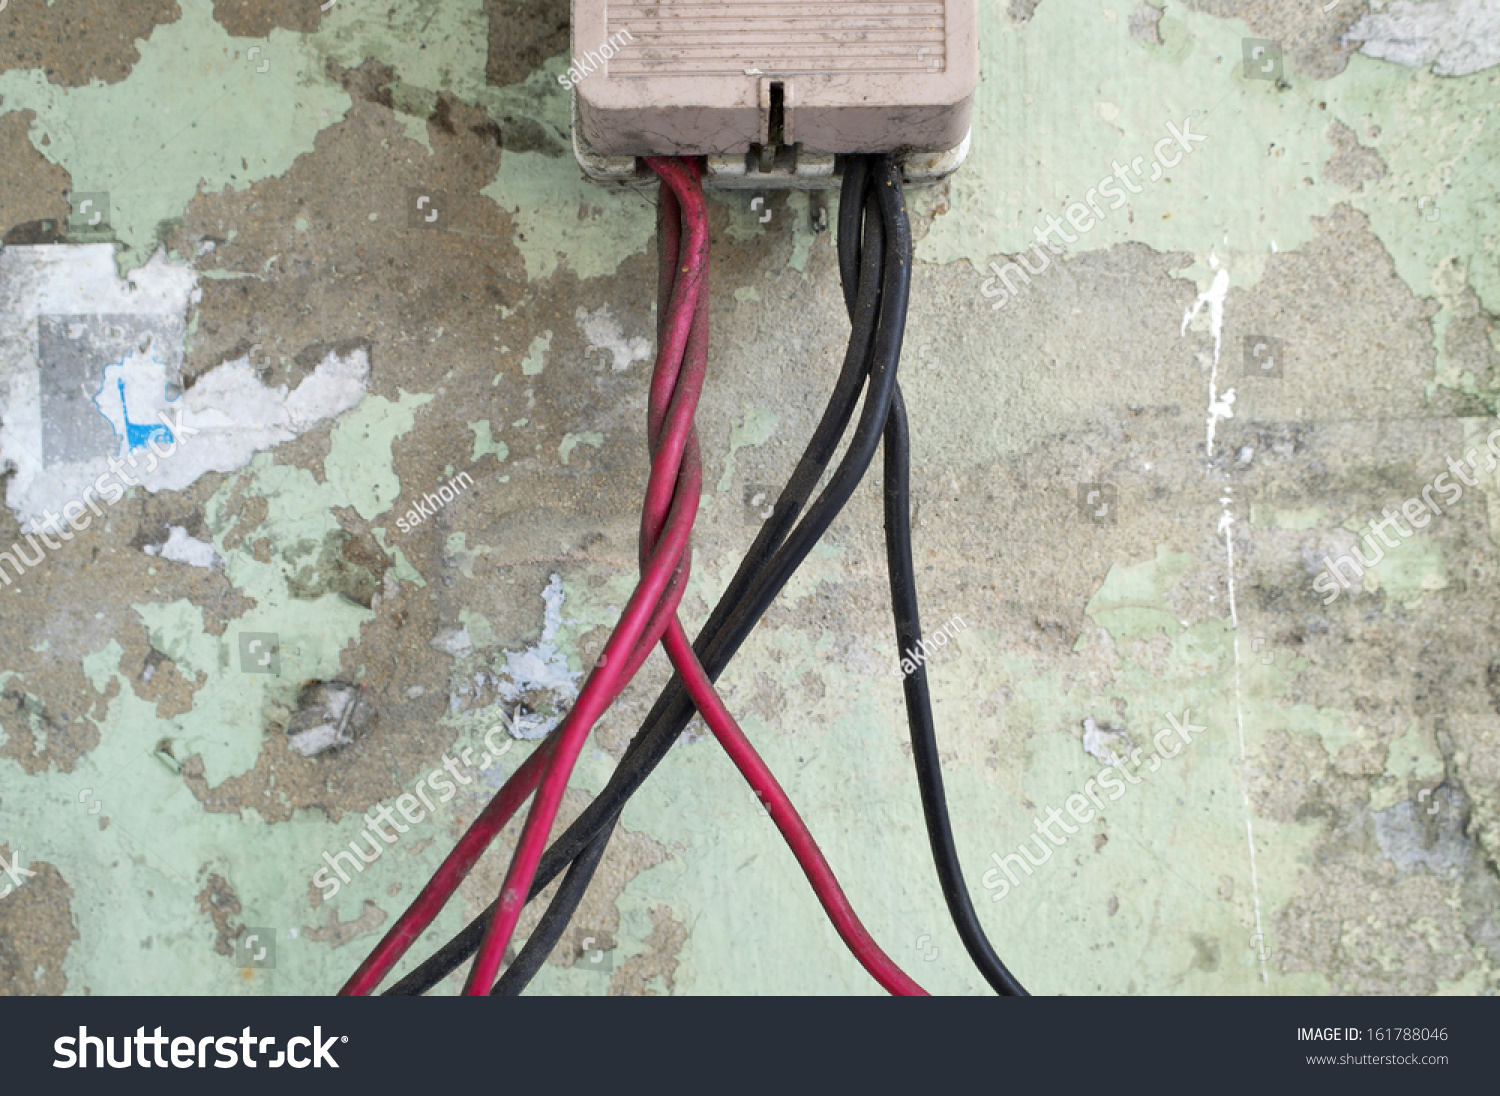 Electric Wire Connect Cut Out Stock Photo (Safe to Use) 161788046 ...